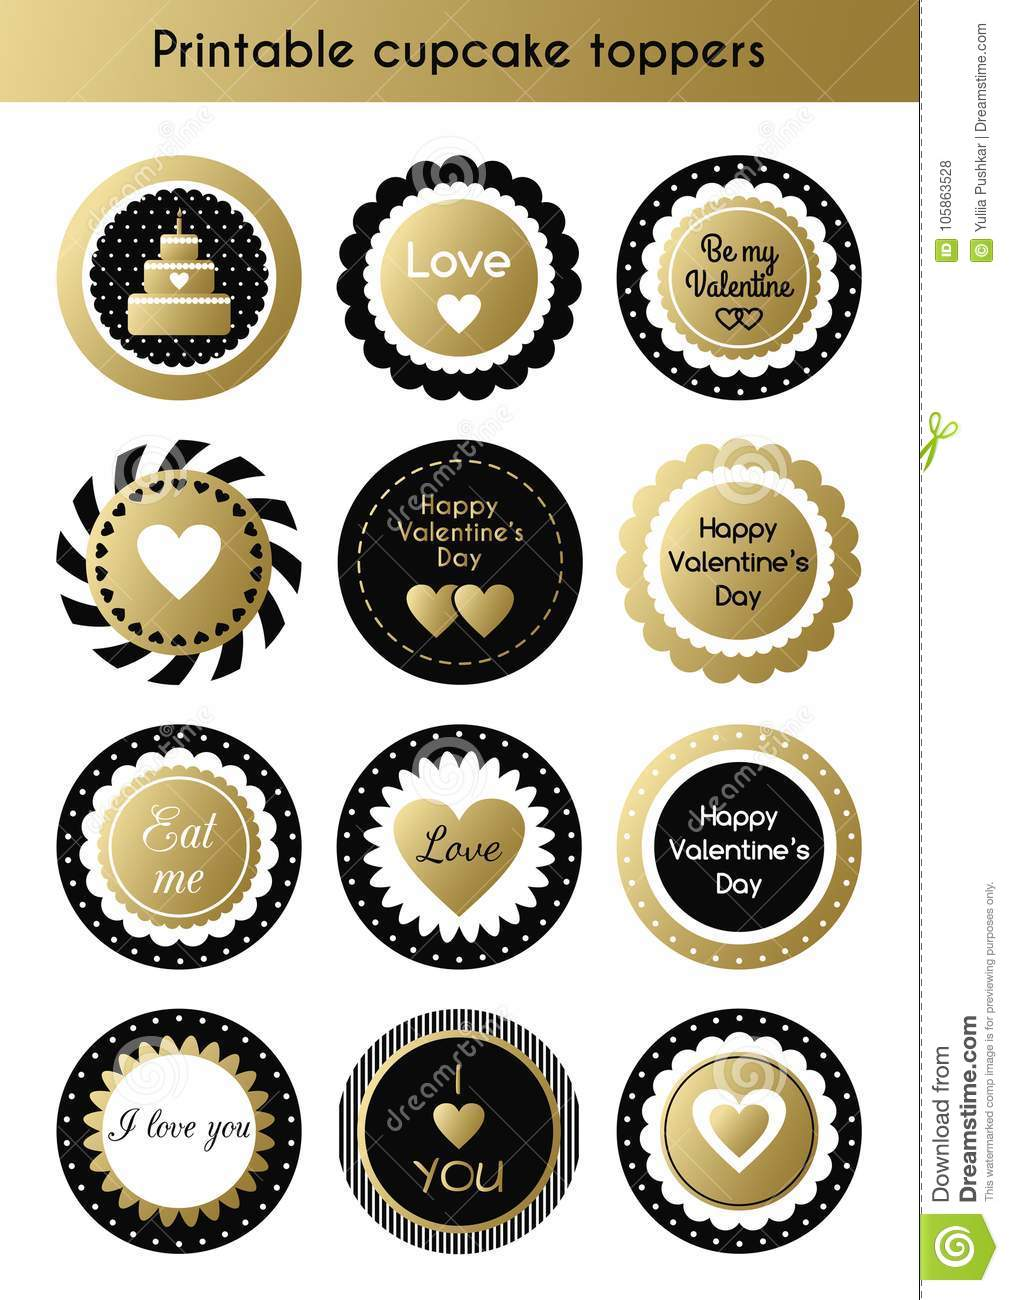 photograph regarding Gold Printable Labels named Preset Of Printable Gold And Black Cupcake Toppers, Tags For